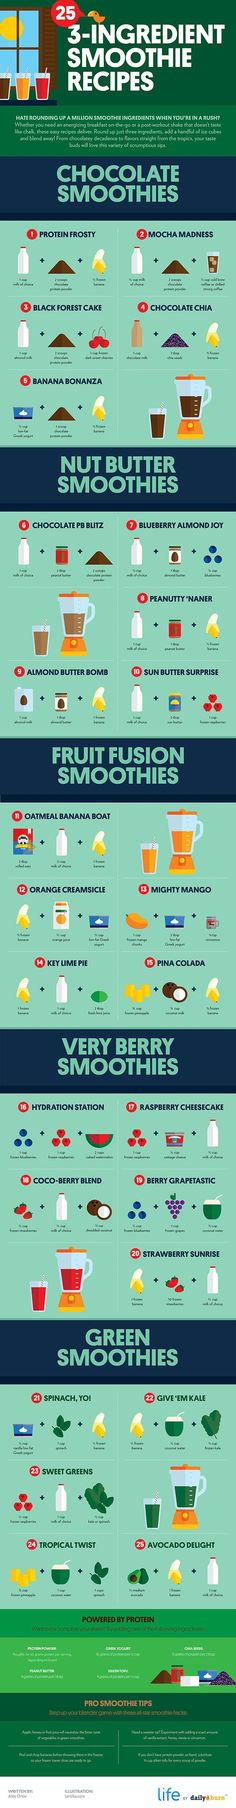 3 Ingredient Smoothies when you're in a rush...